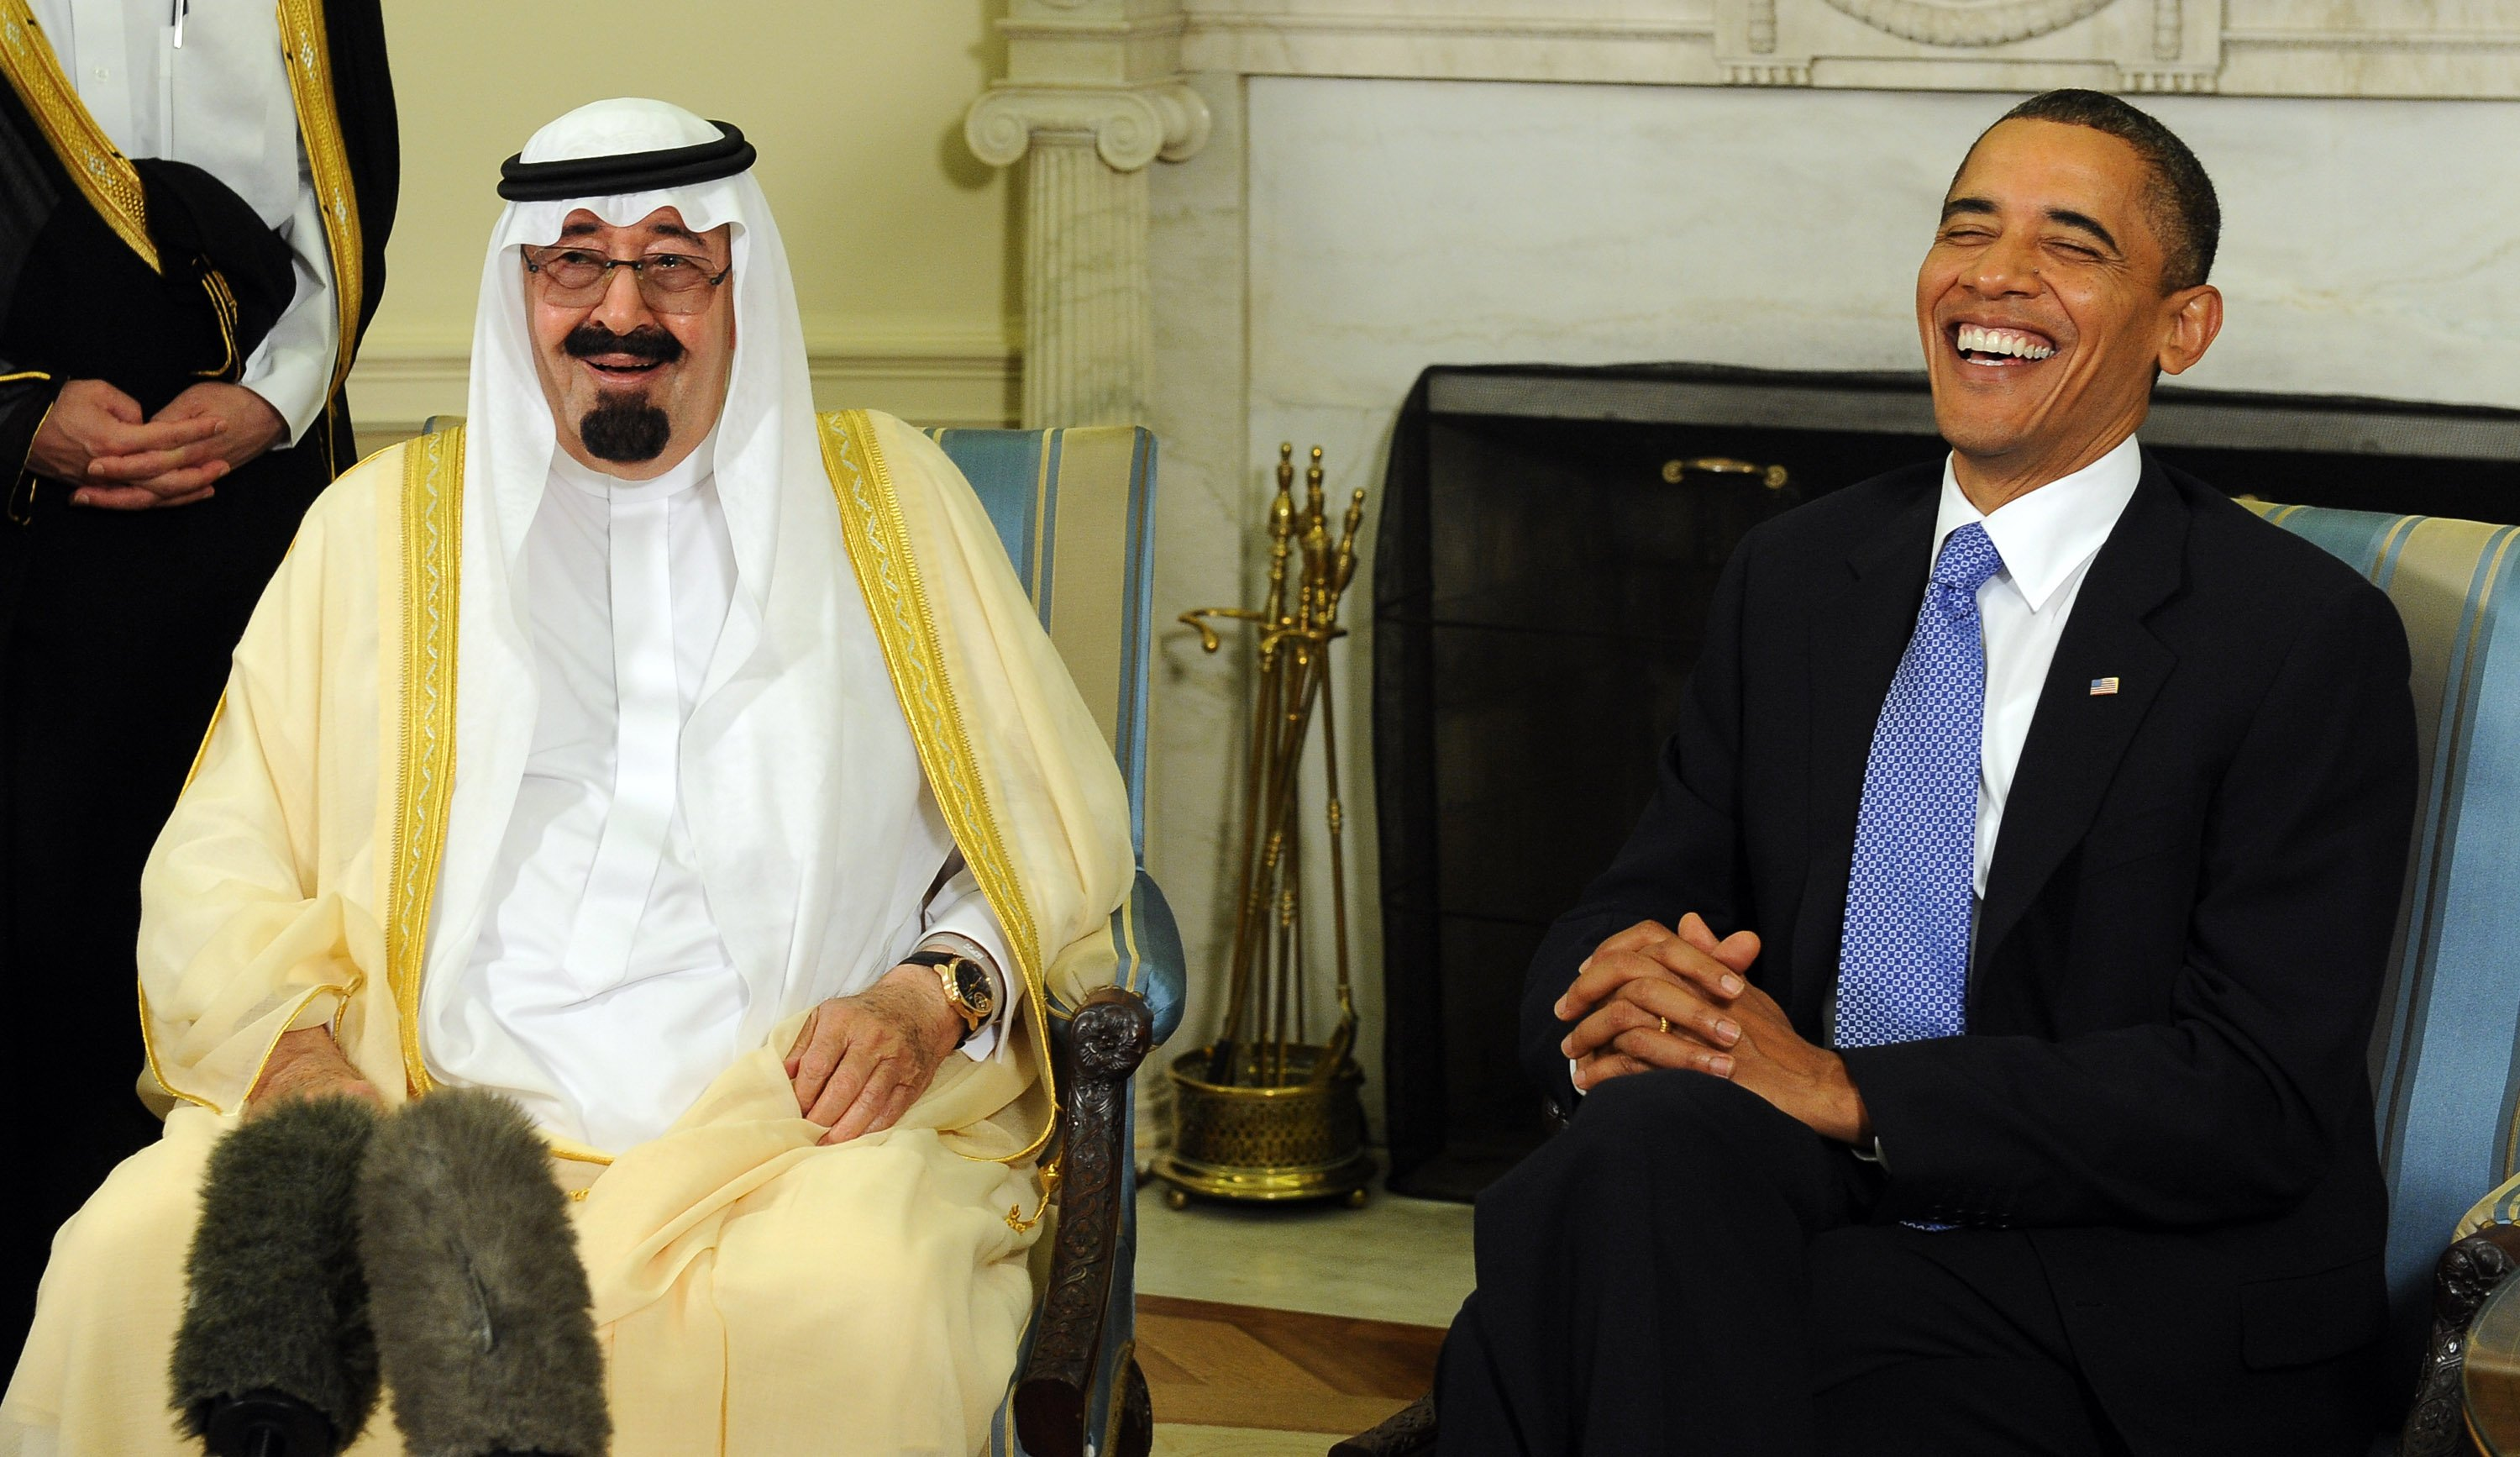 U.S. President Barack Obama and Saudi Arabian King Abdullah laugh as they speak to the media after their meeting in the Oval Office of the White House, in Washington, D.C., on June 29, 2010